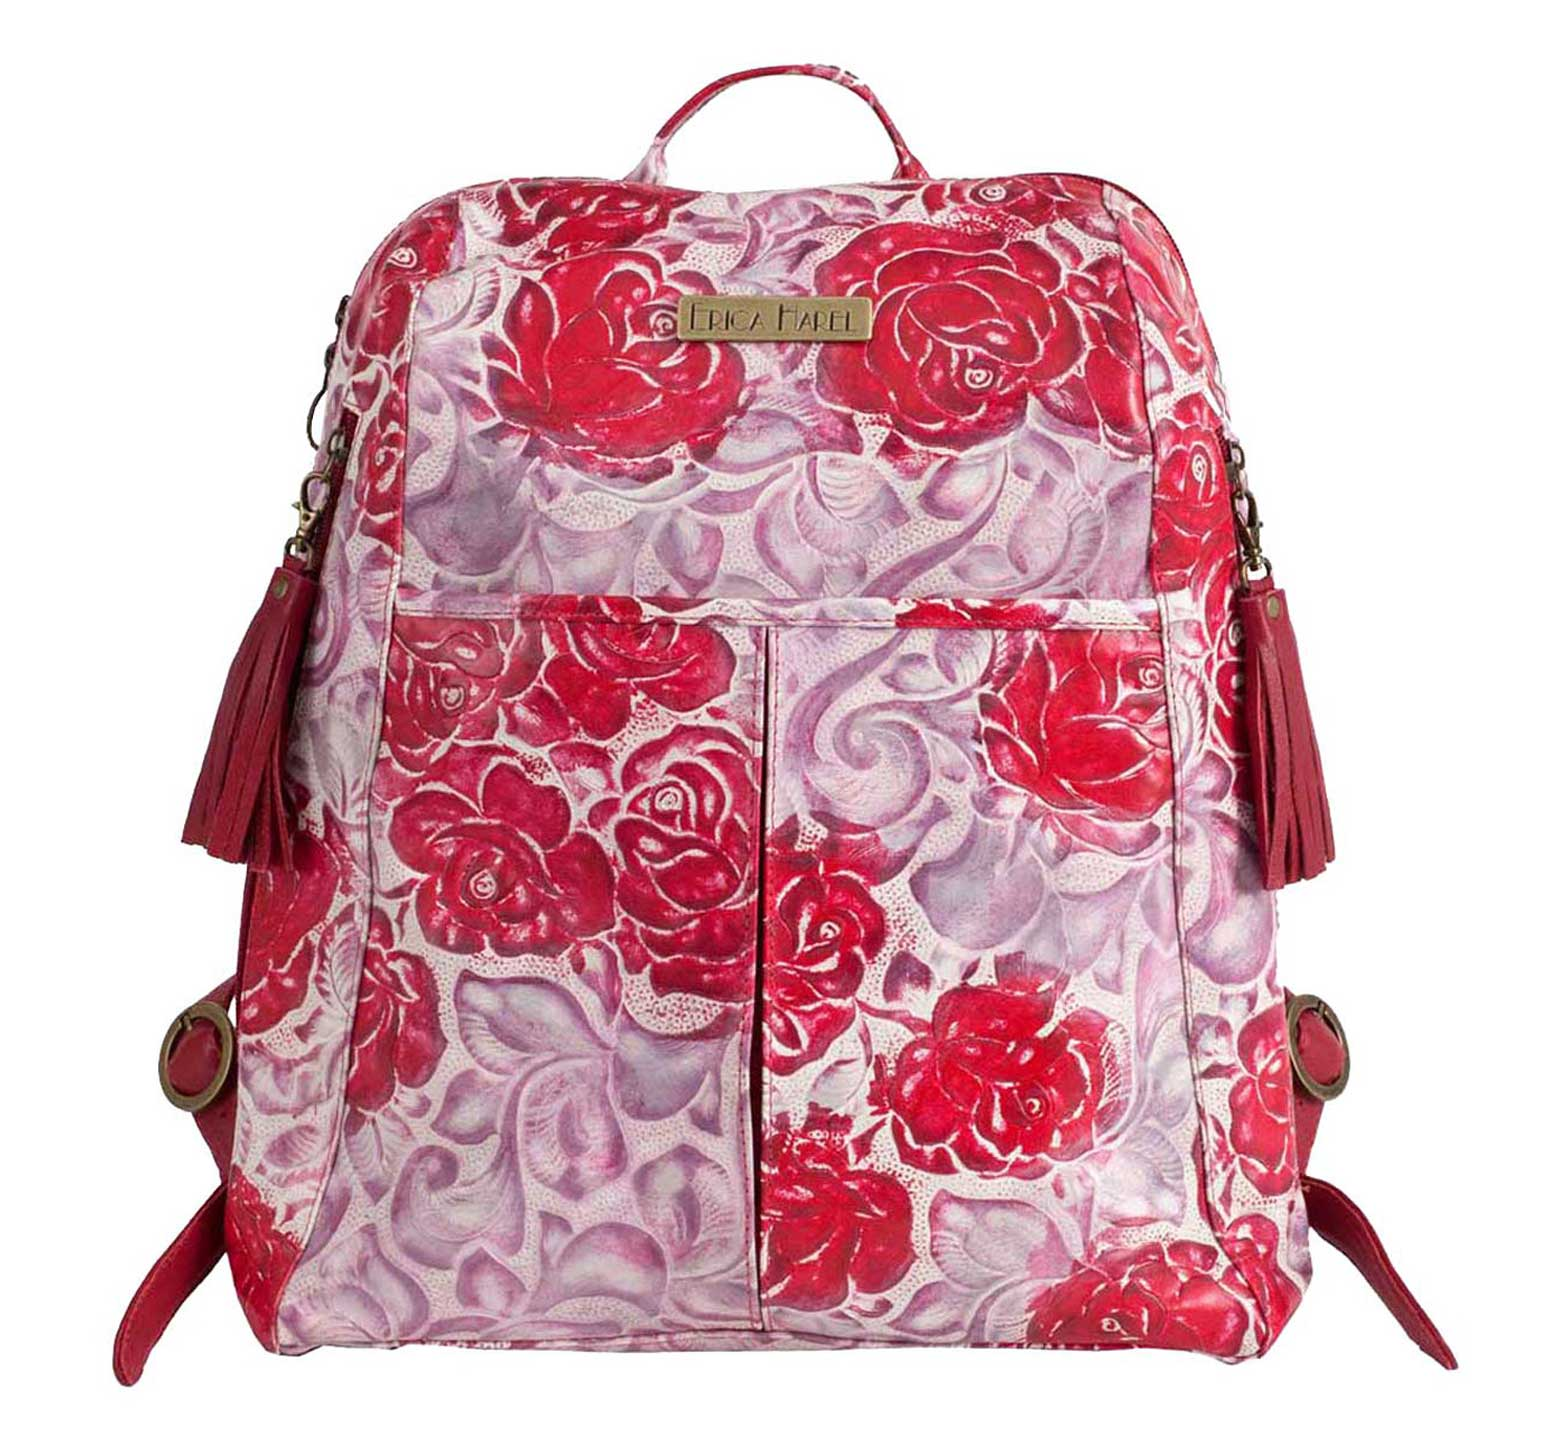 floral print red leather backpack